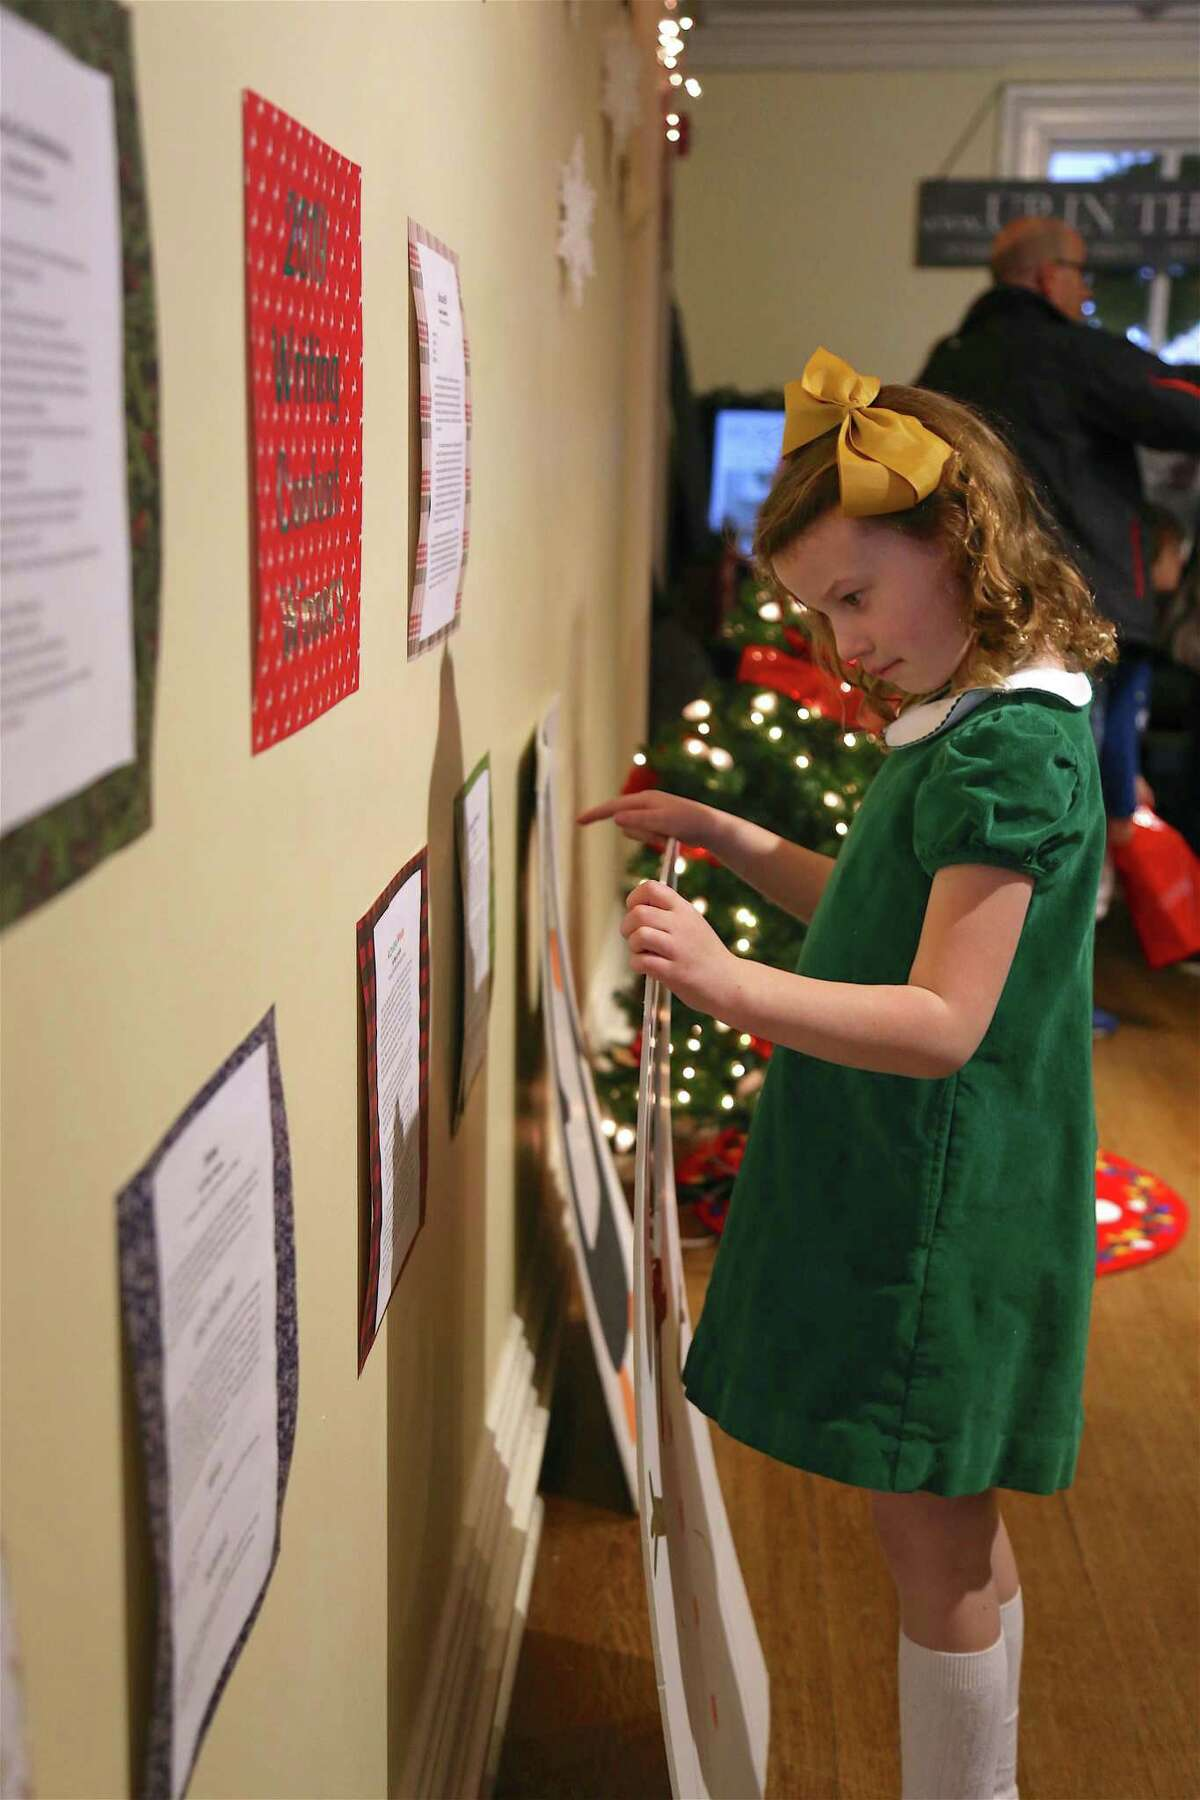 Henriette Greiner, 6, of Fairfield, reads some writing contest entries at the annual Visit to Santa's House at Burr Homestead on Sunday, Dec. 15, 2019, in Fairfield, Conn.